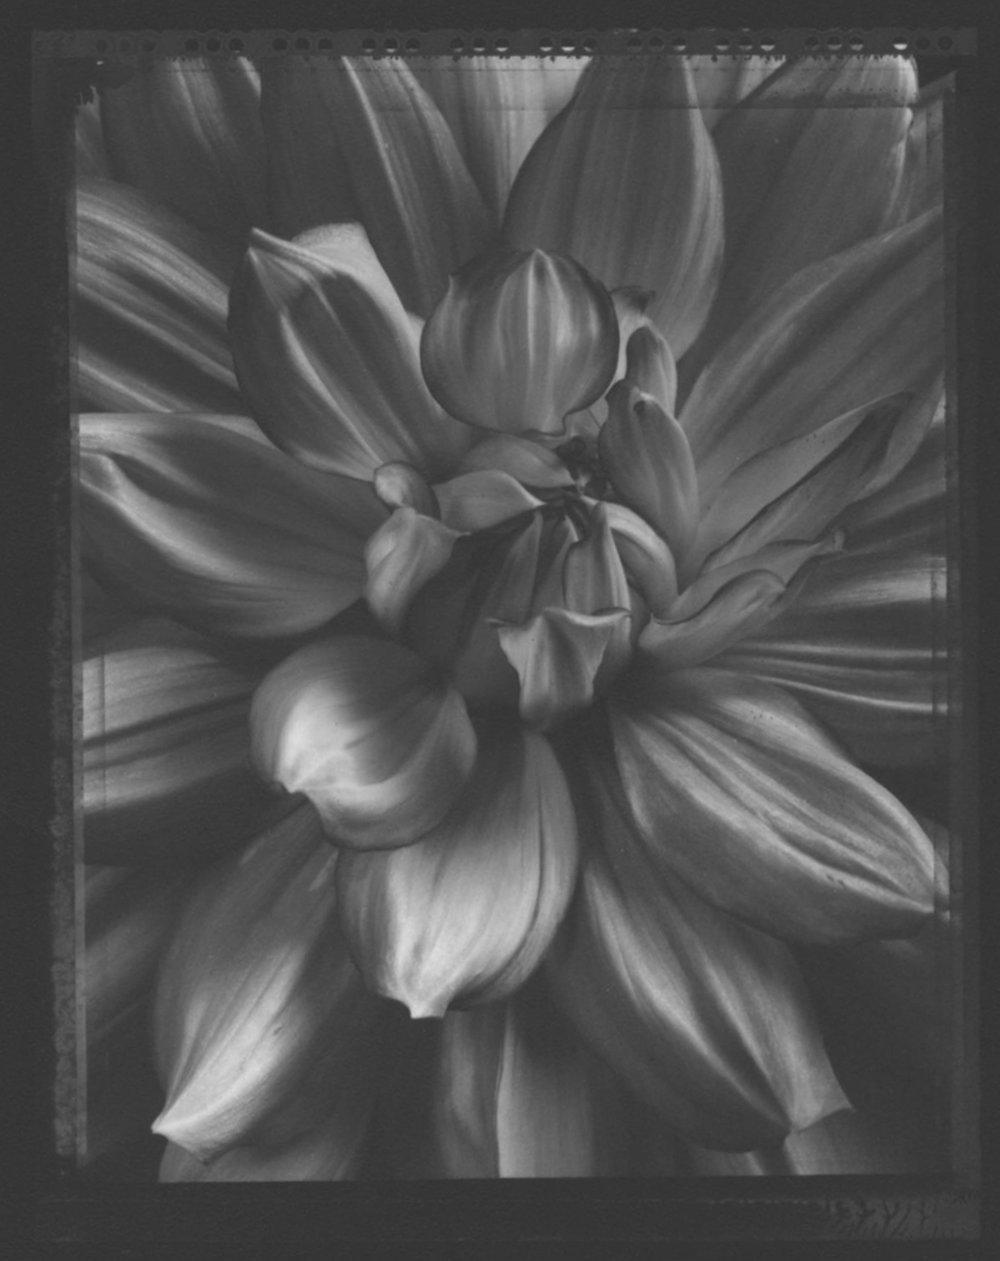 TOM BARIL Dahlia Blossom, 1998